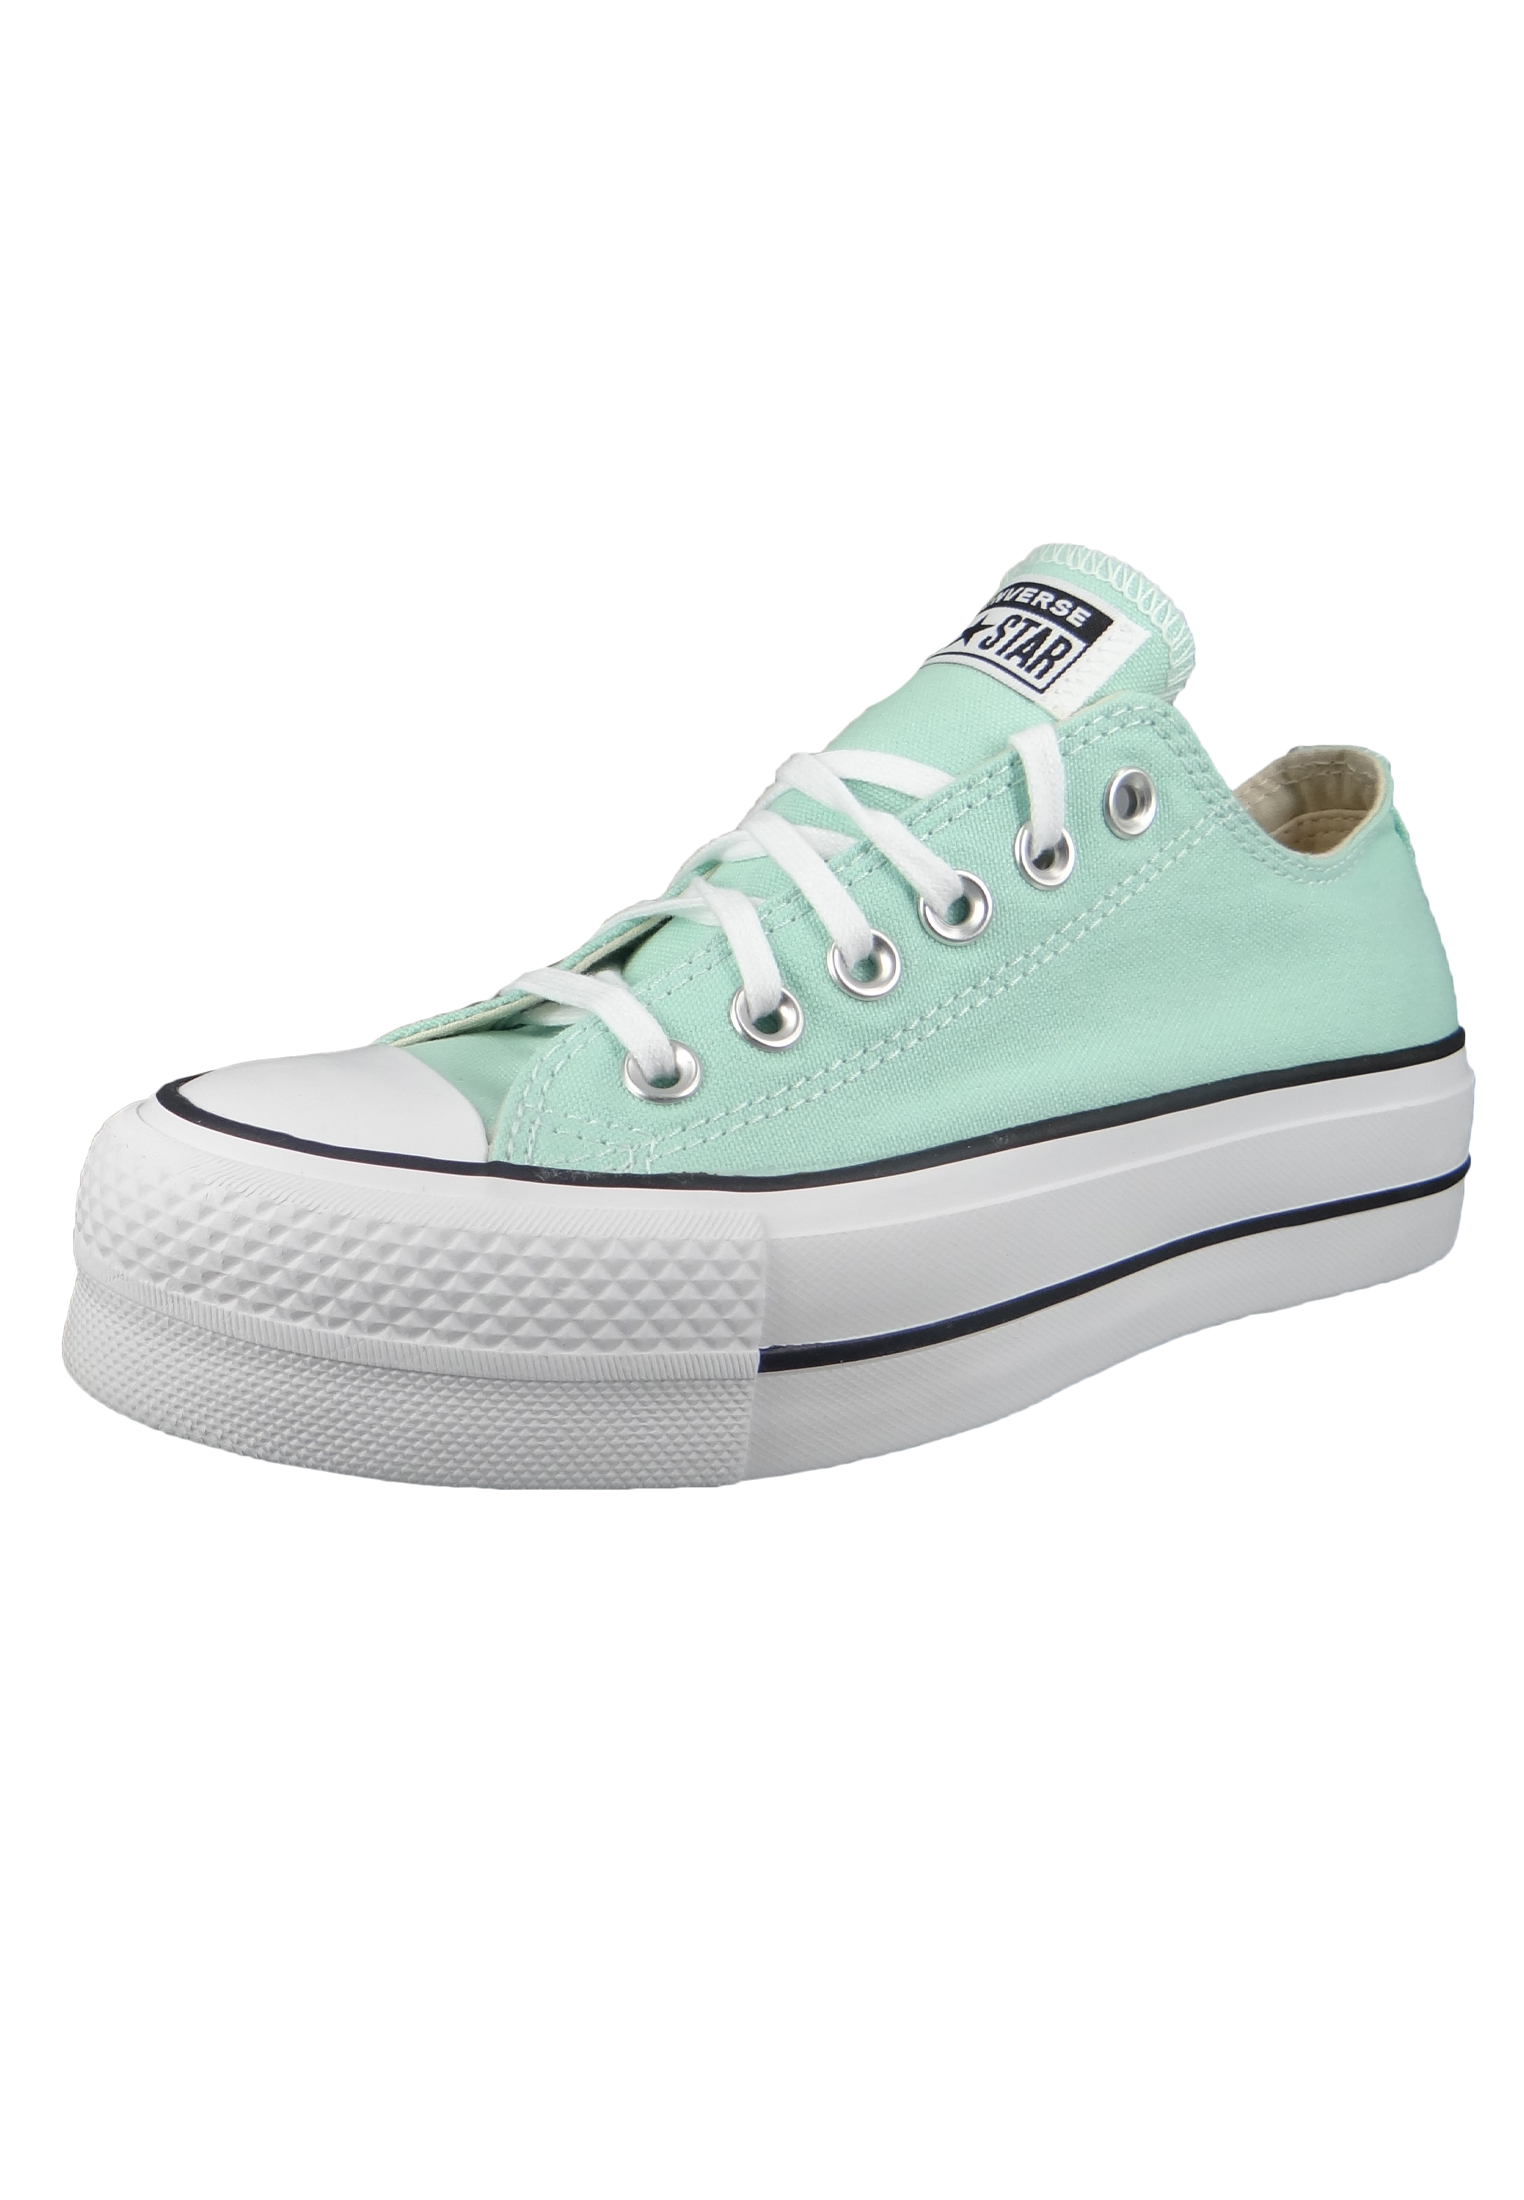 Converse Chucks Plateau Mint 566758C Chuck Taylor All Star